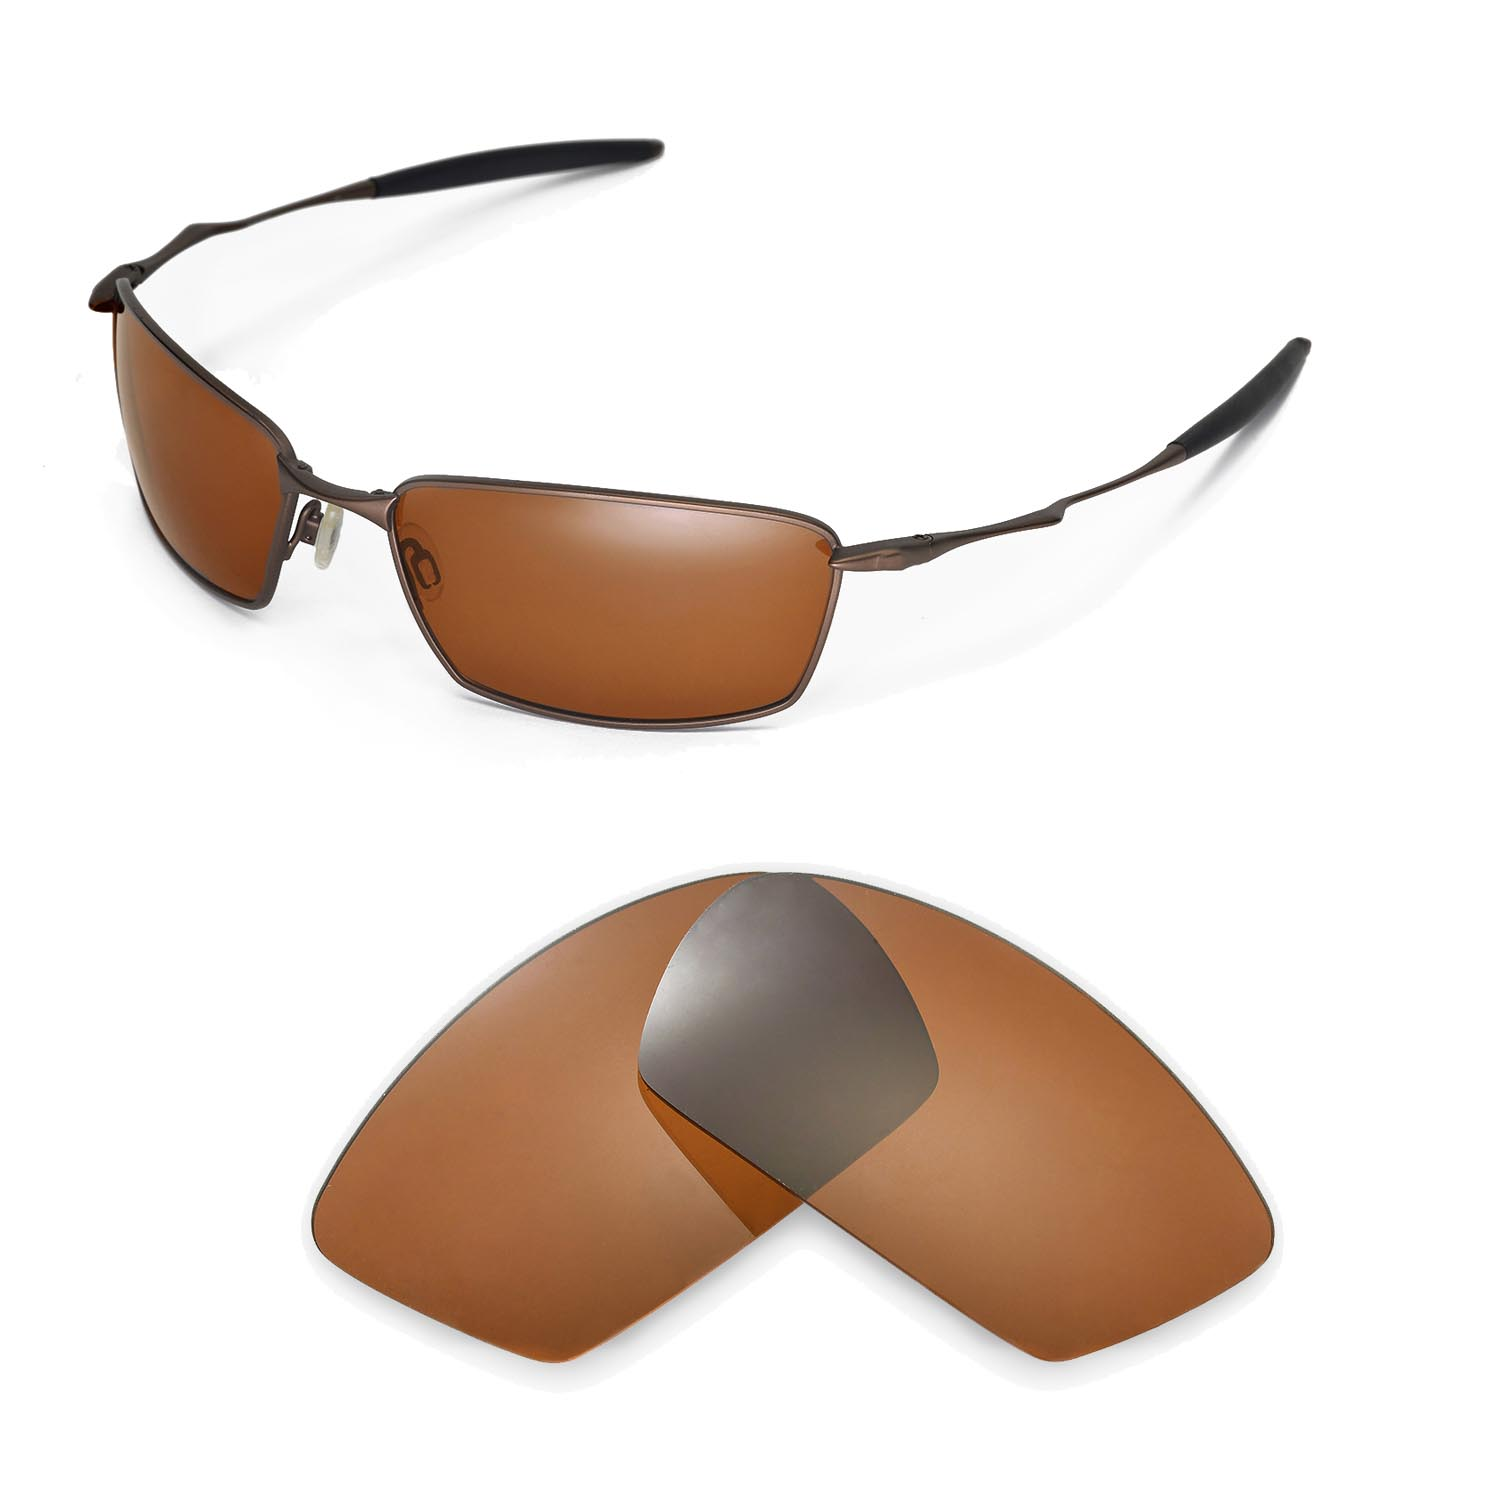 bb36a87434 Walleva Polarized Brown Replacement Lenses for Oakley Square Whisker  Sunglasses